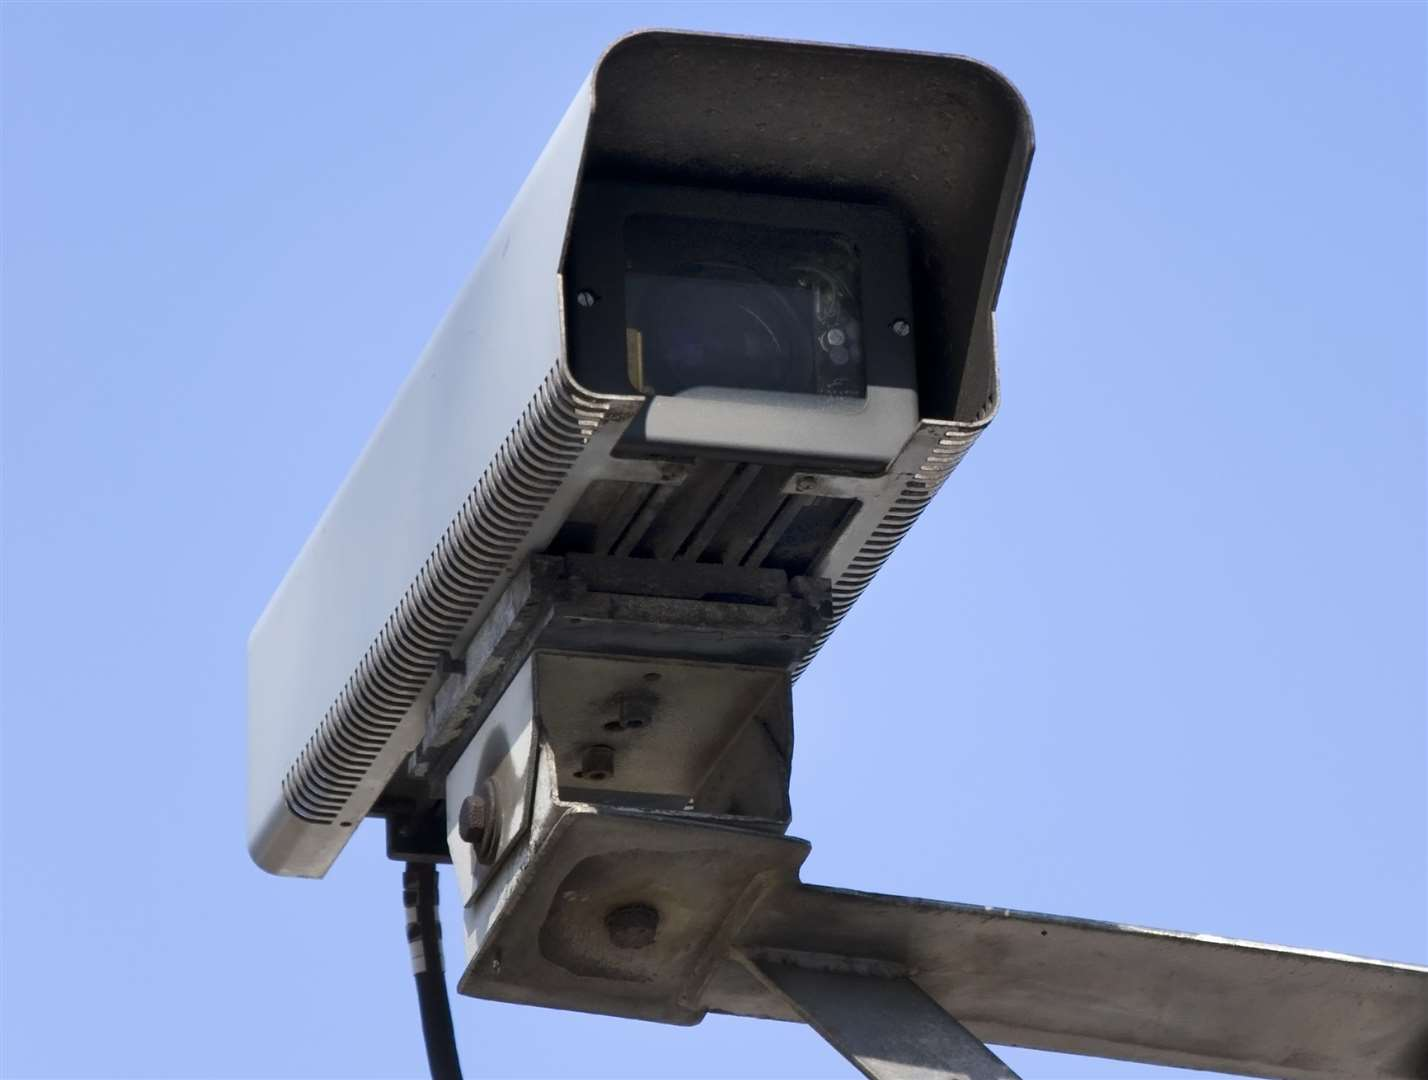 Stock picture of a CCTV camera